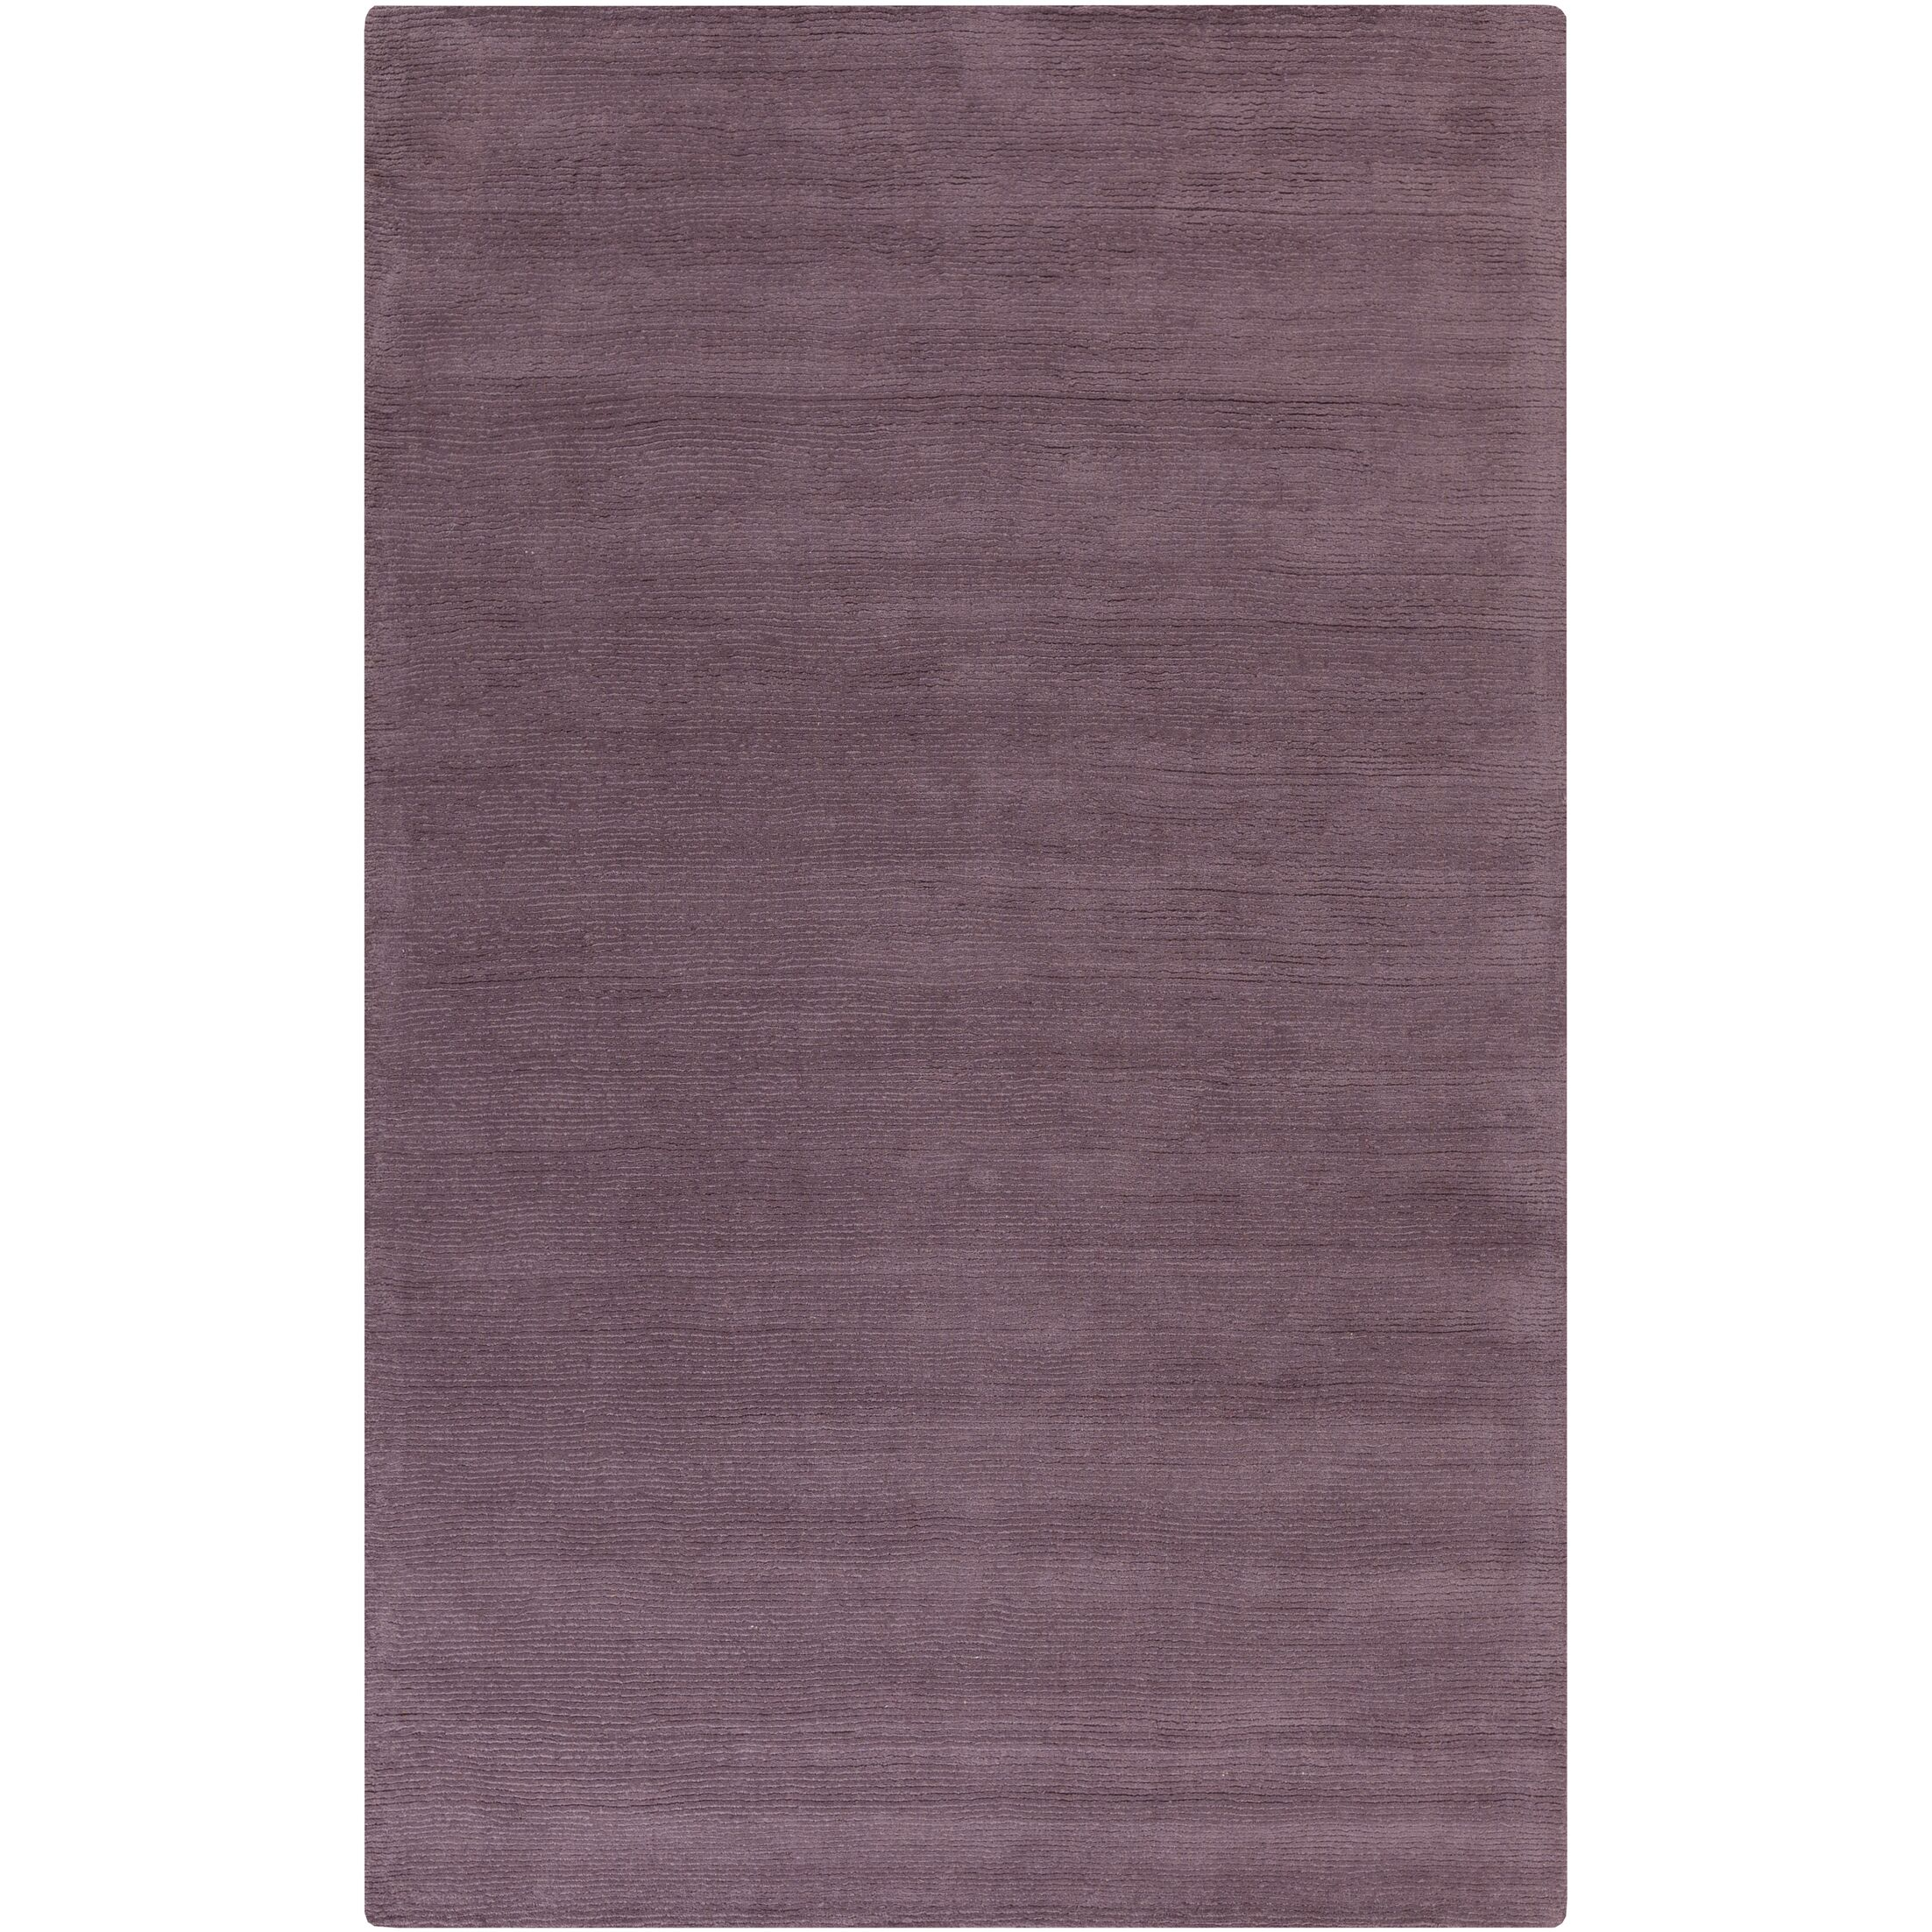 Naples Hand Woven Mauve Area Rug Rug Size: Rectangle 3'3